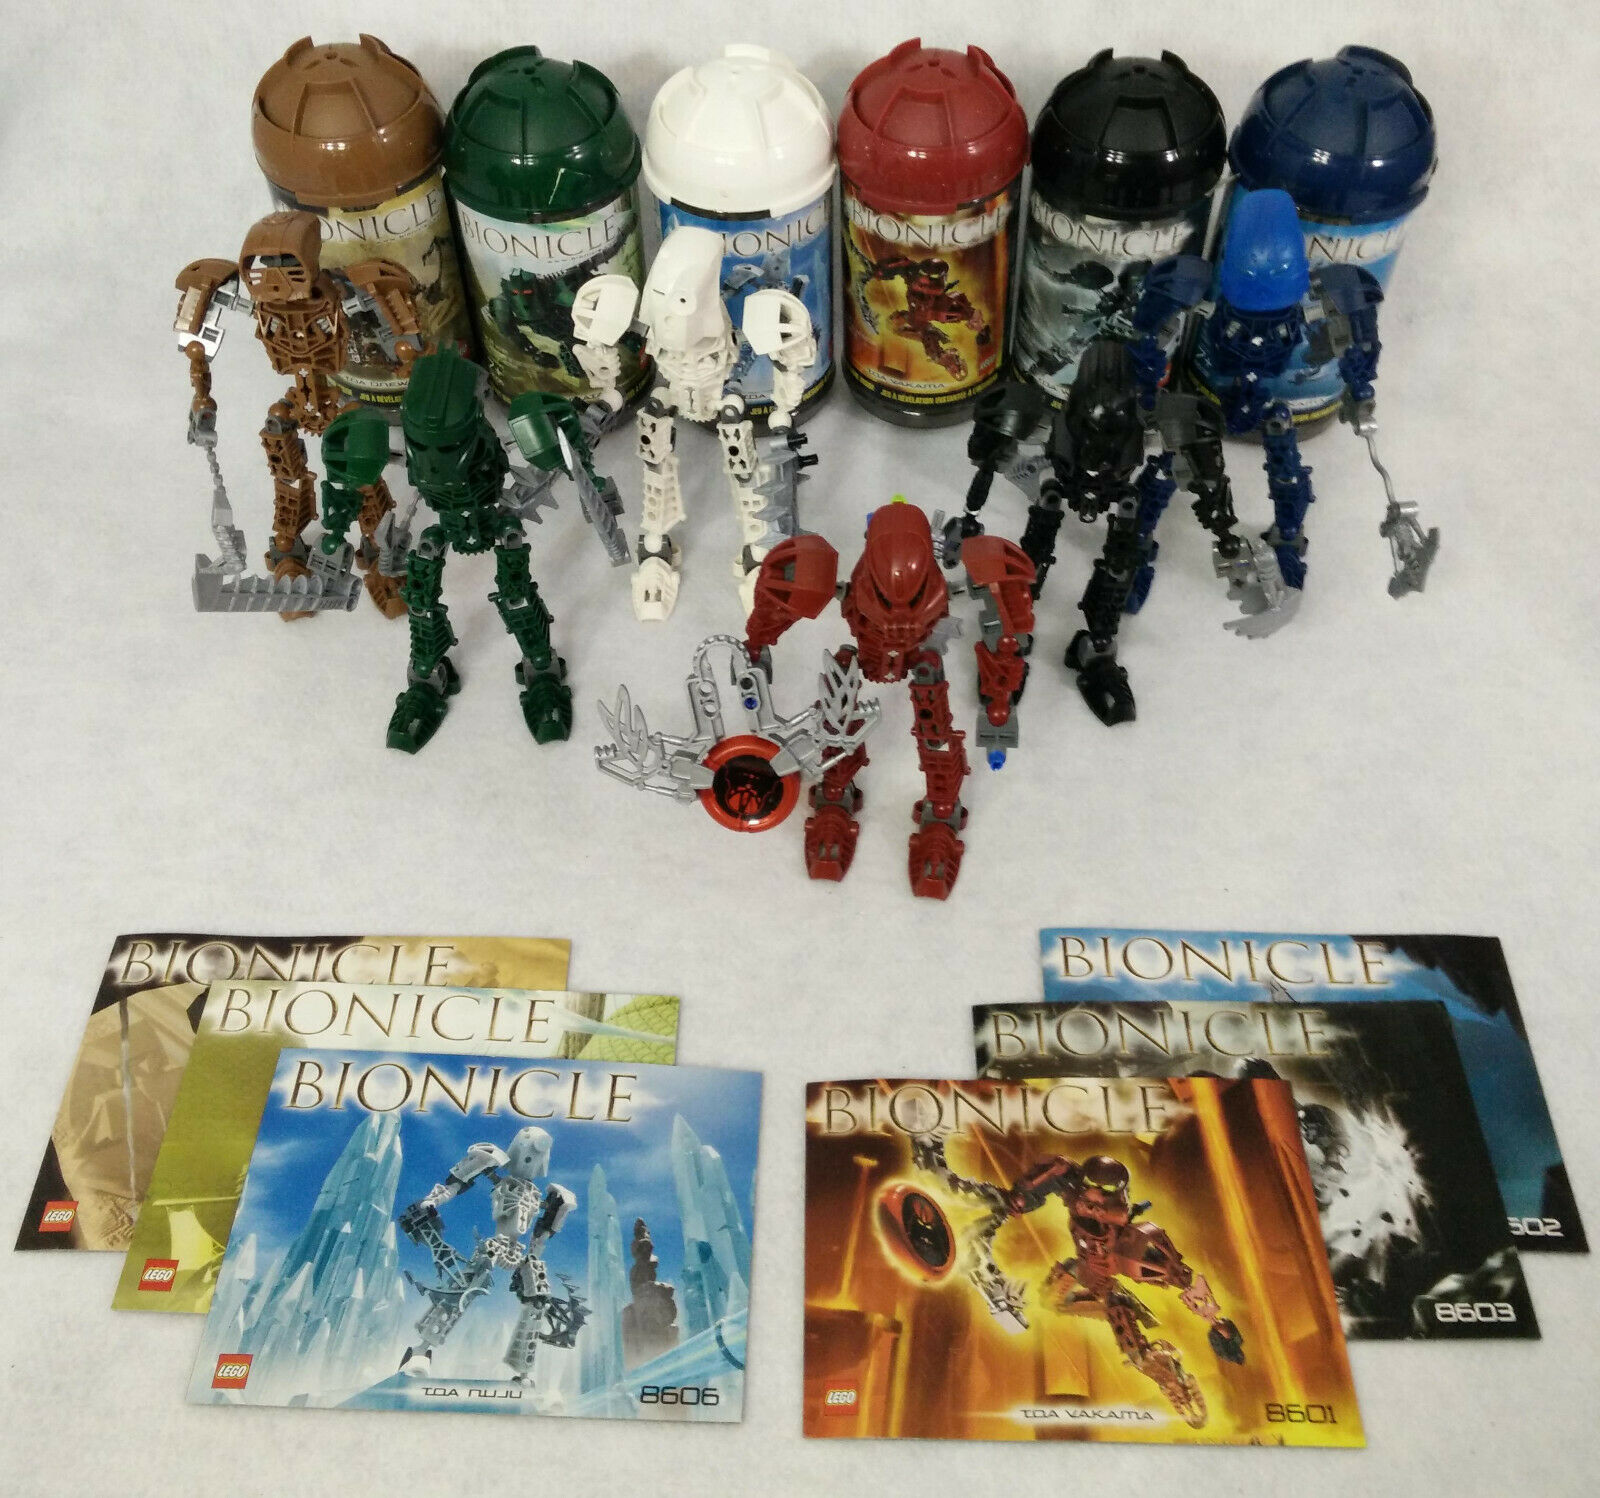 2004 Lego Bionicle TOA METRU Set Canisters Manuals 8605 8602 8606 8604 8601 8603